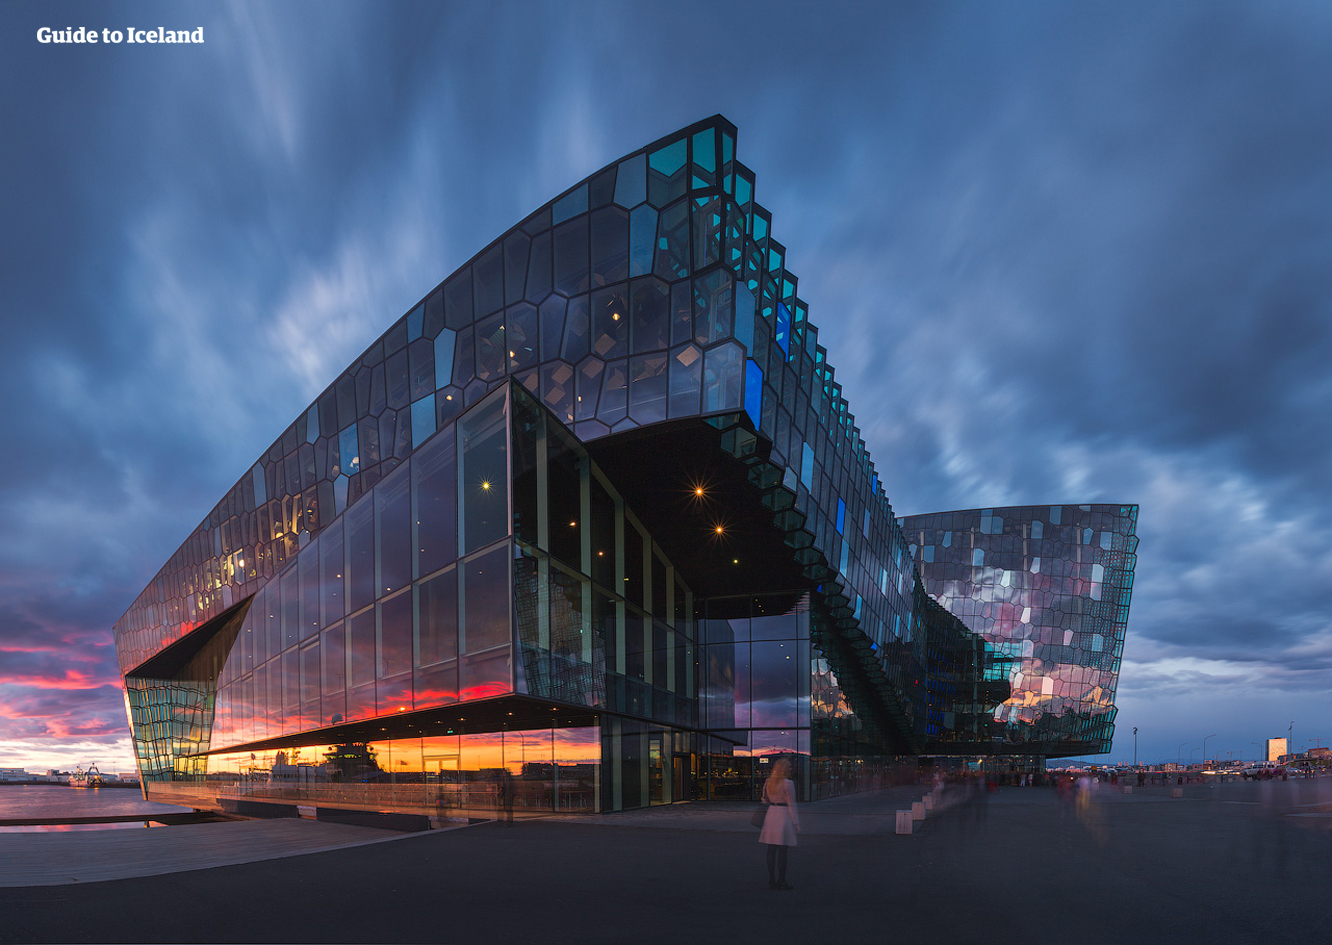 Harpa Concert Hall in the heart of Reykjavik city